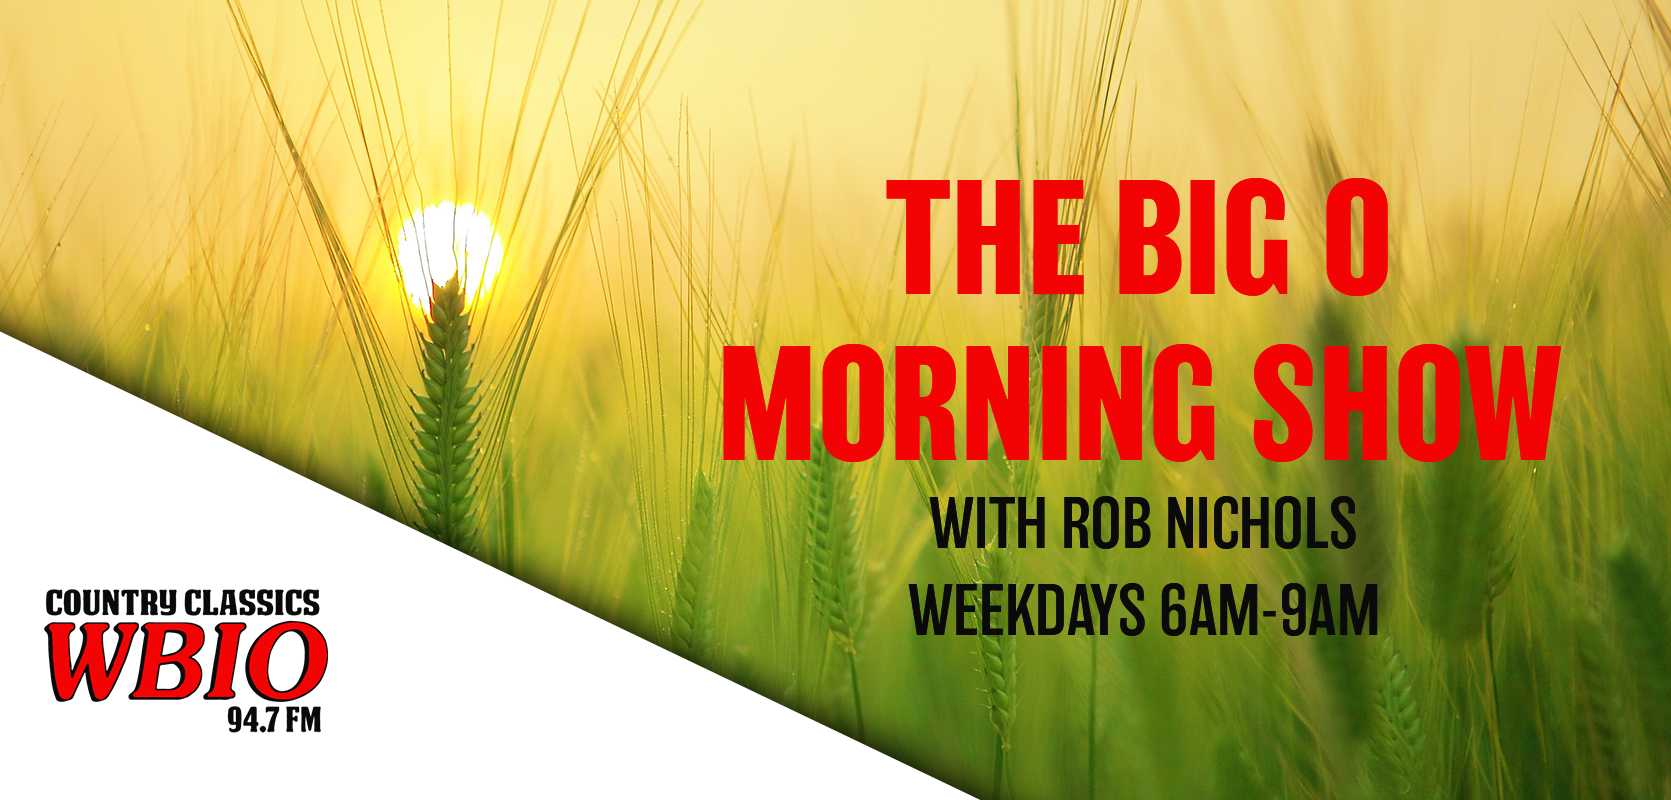 The Tuesday Big O MOrning Show is Now!